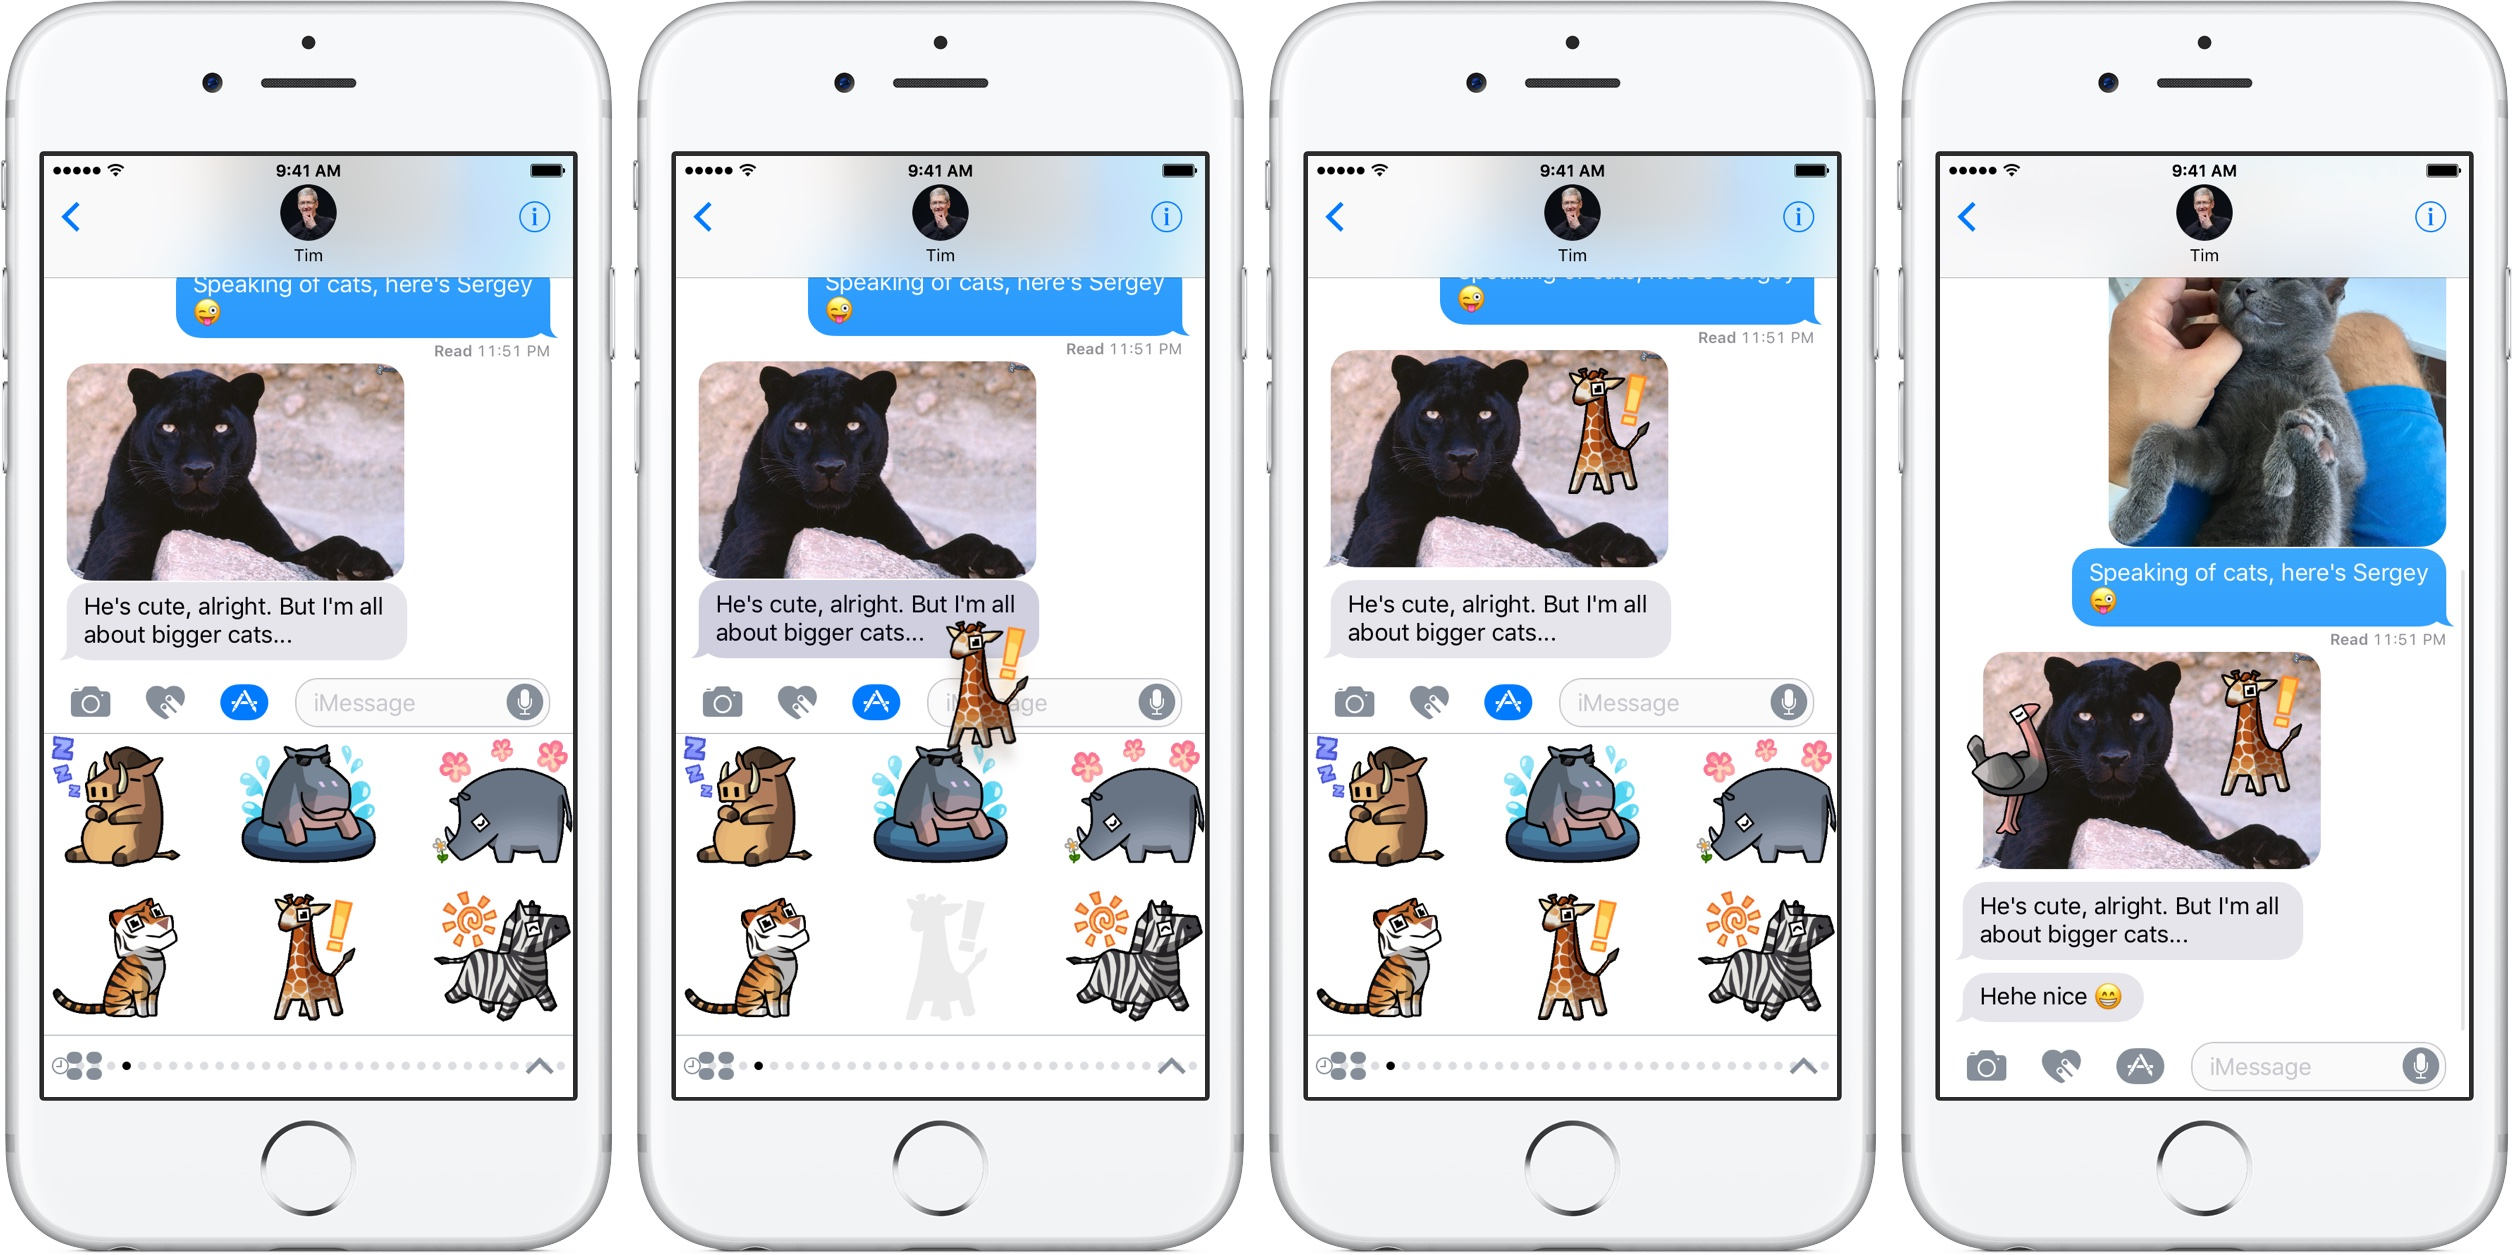 iOS 10 Messages use stickers silver iPhone fullscreen screenshot 003